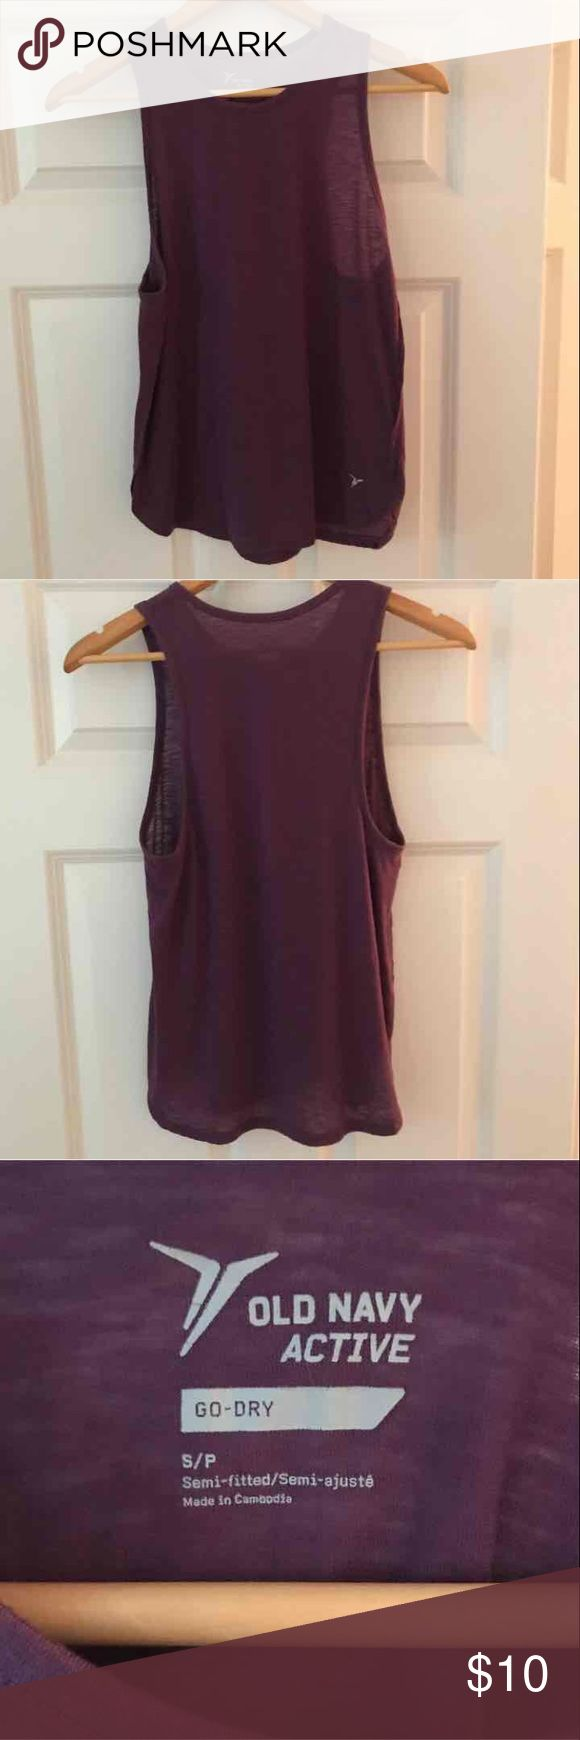 Old Navy gym tank top Like new! Worn one time! Very comfy top for gym or just relaxing. Feel free to message me, we can always talk about the price for the item and shipping! Old Navy Tops Tank Tops